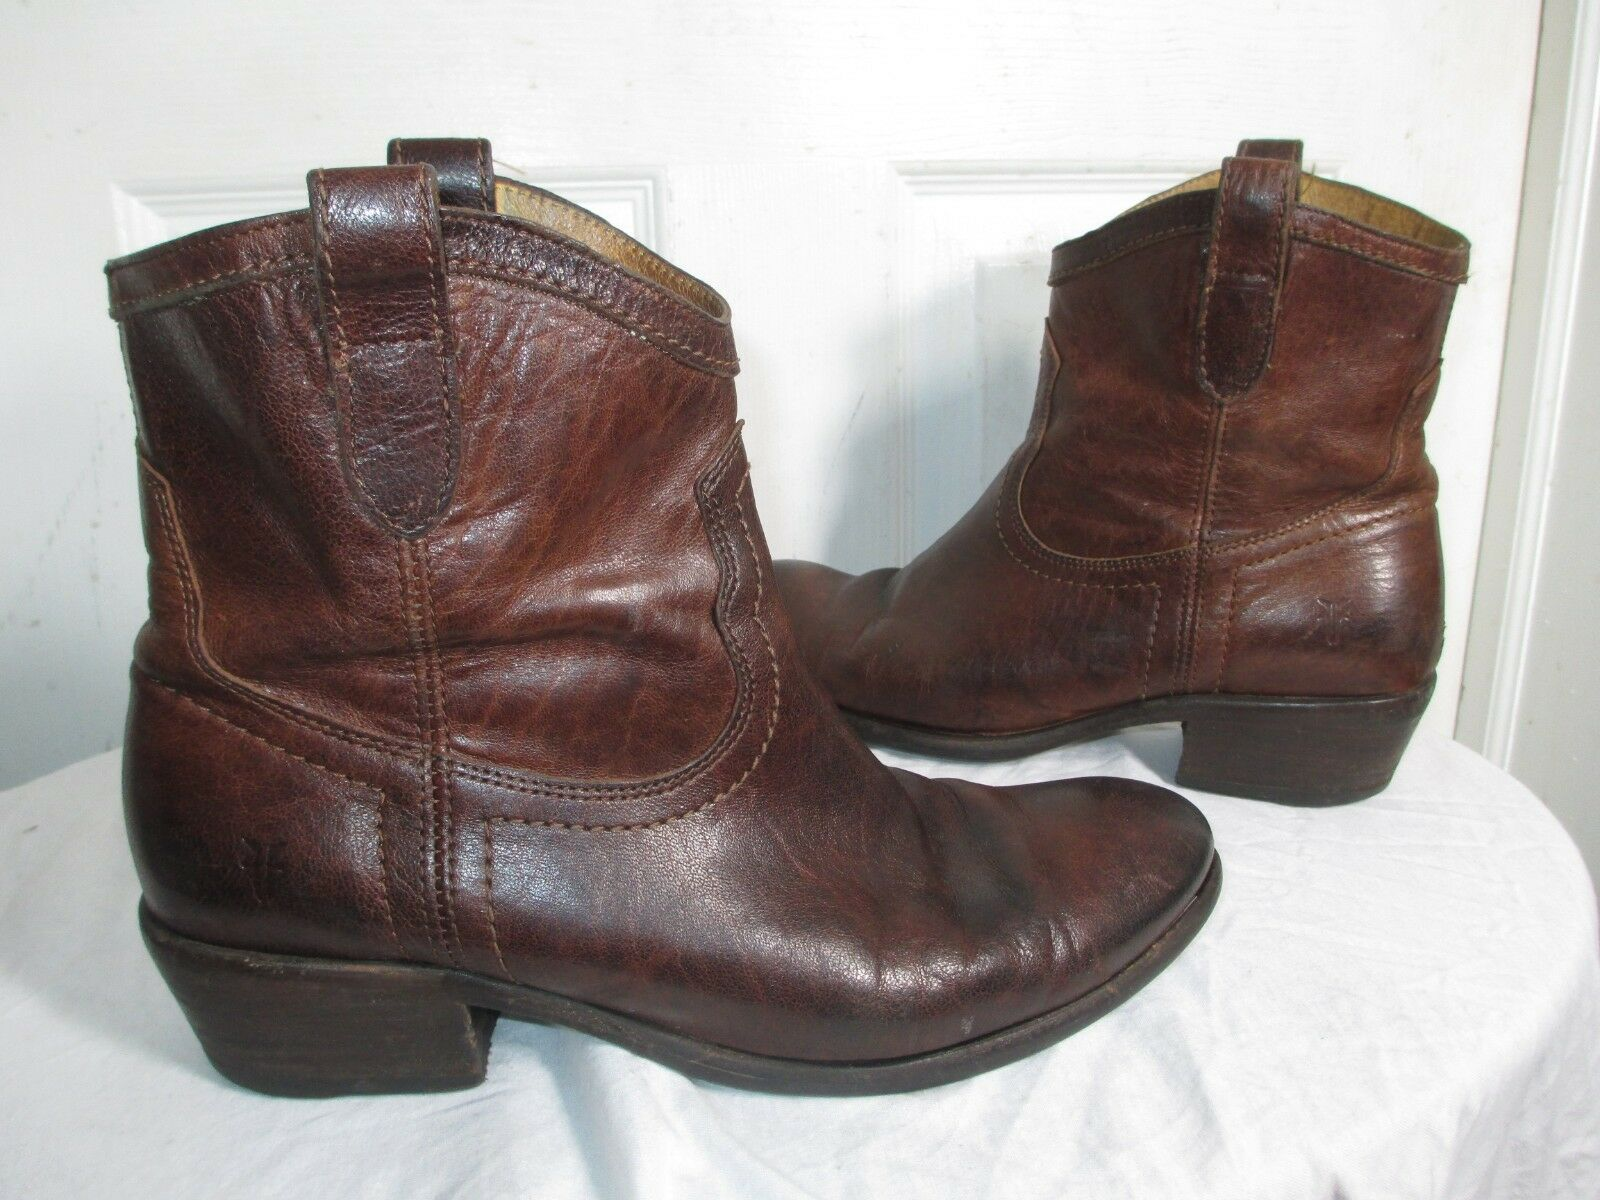 FRYE CARSON SHORTIE 76673 WOMEN'S BROWN WASHED ANTIQUE PULL ON ANKLE BOOTS 10 B